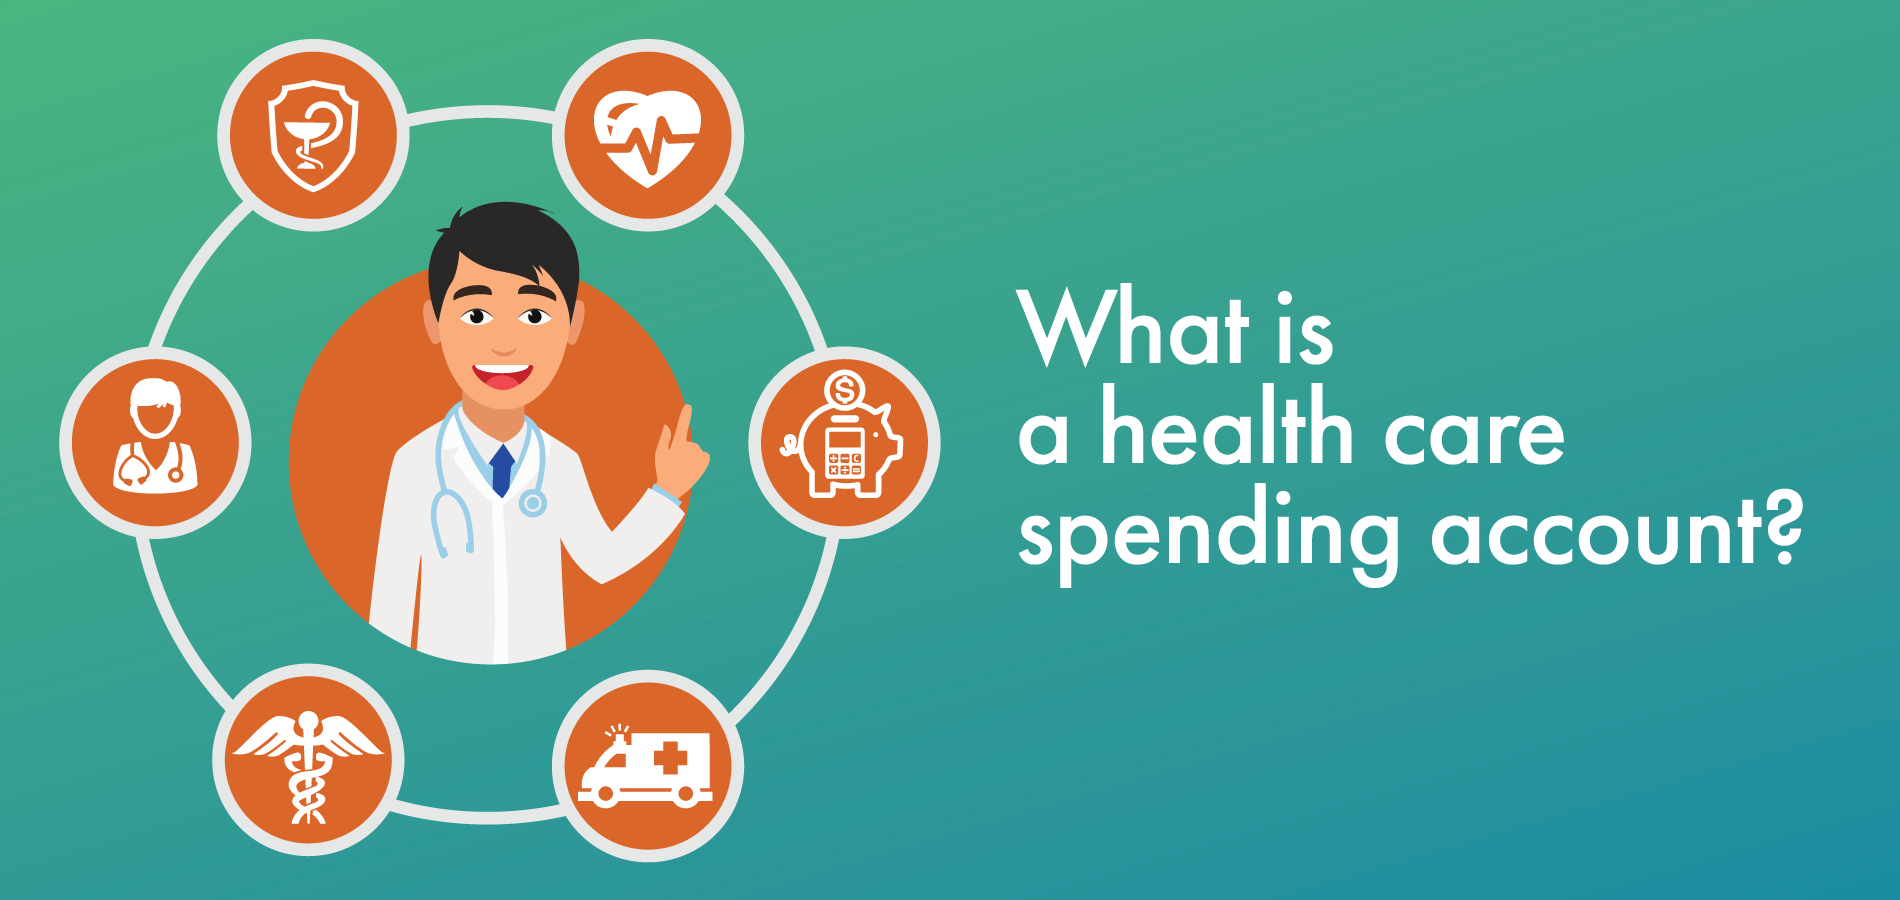 What is a health care spending account in Canada